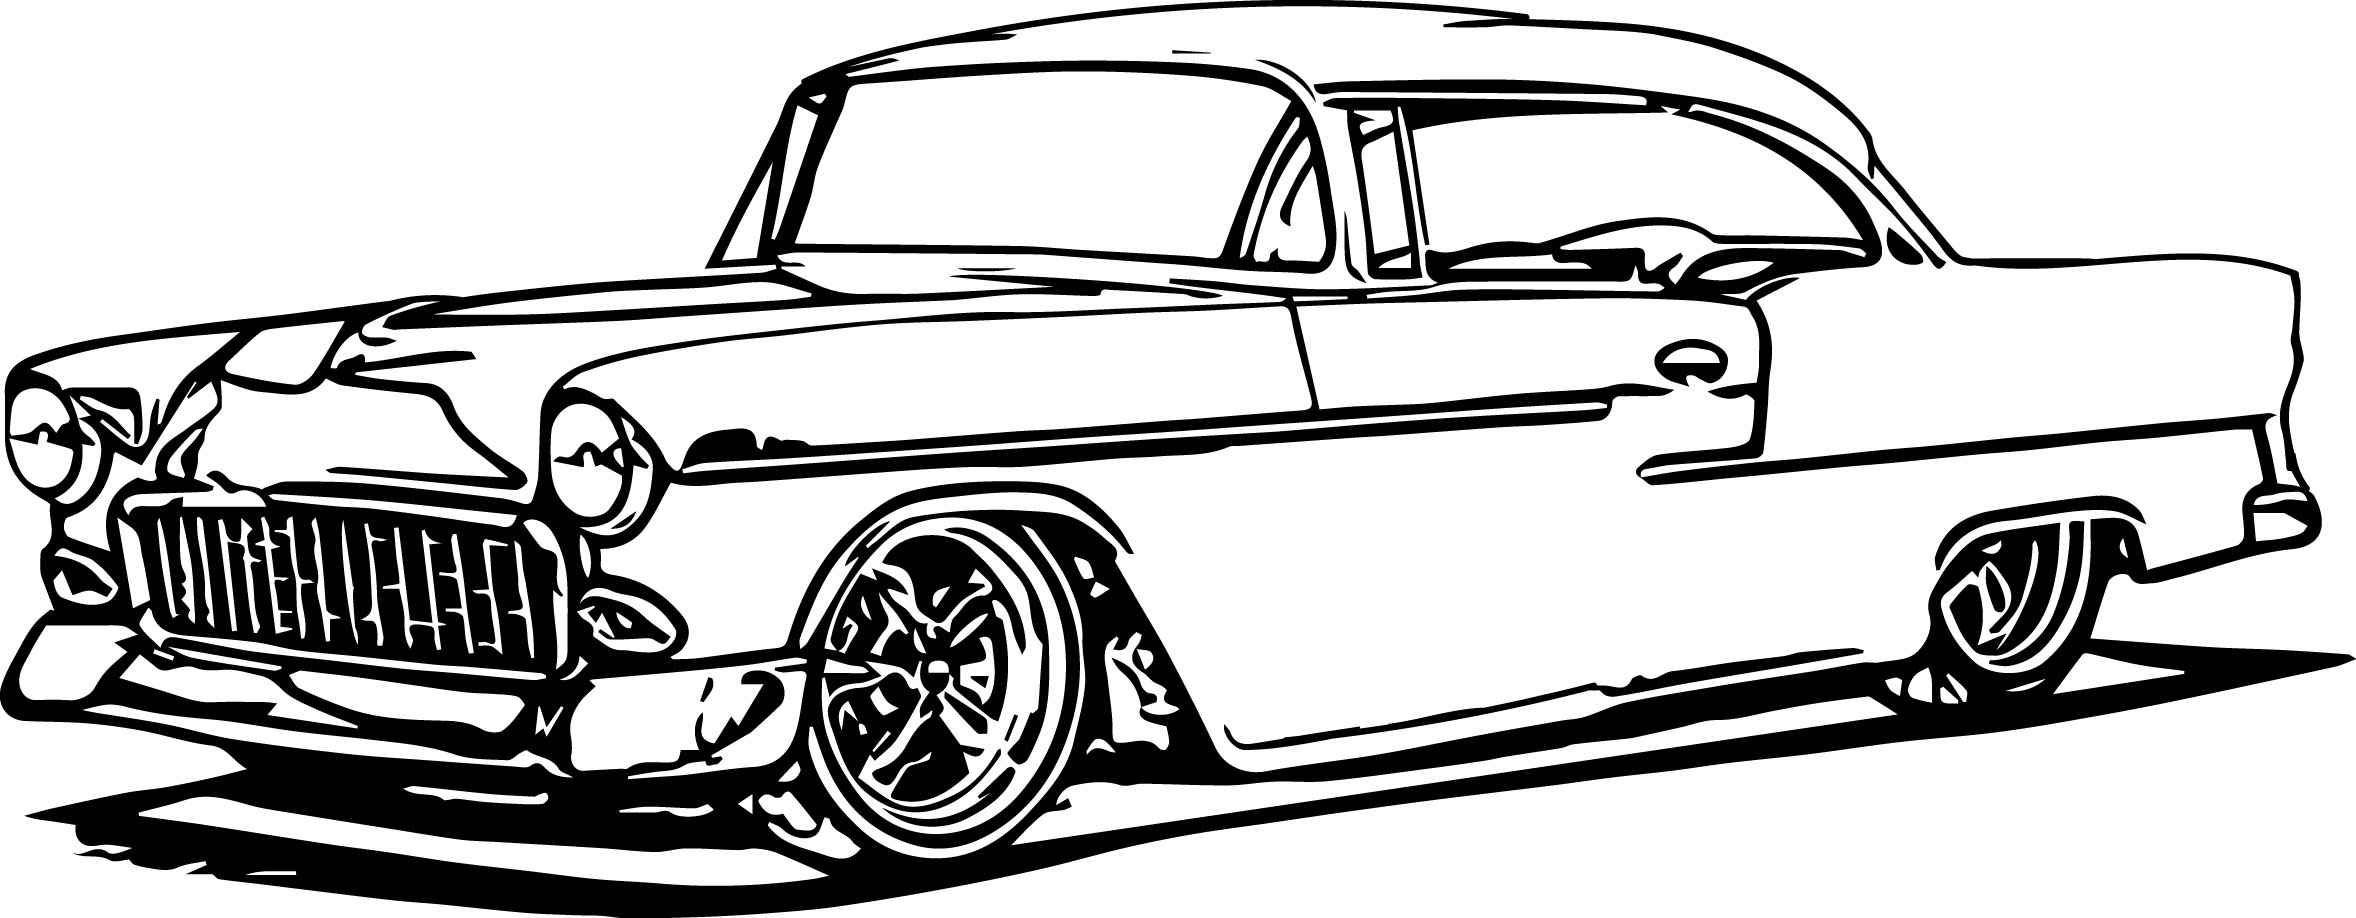 Coloring Pages Classic Cars Free Cars Coloring Pages Old School Cars Race Car Coloring Pages